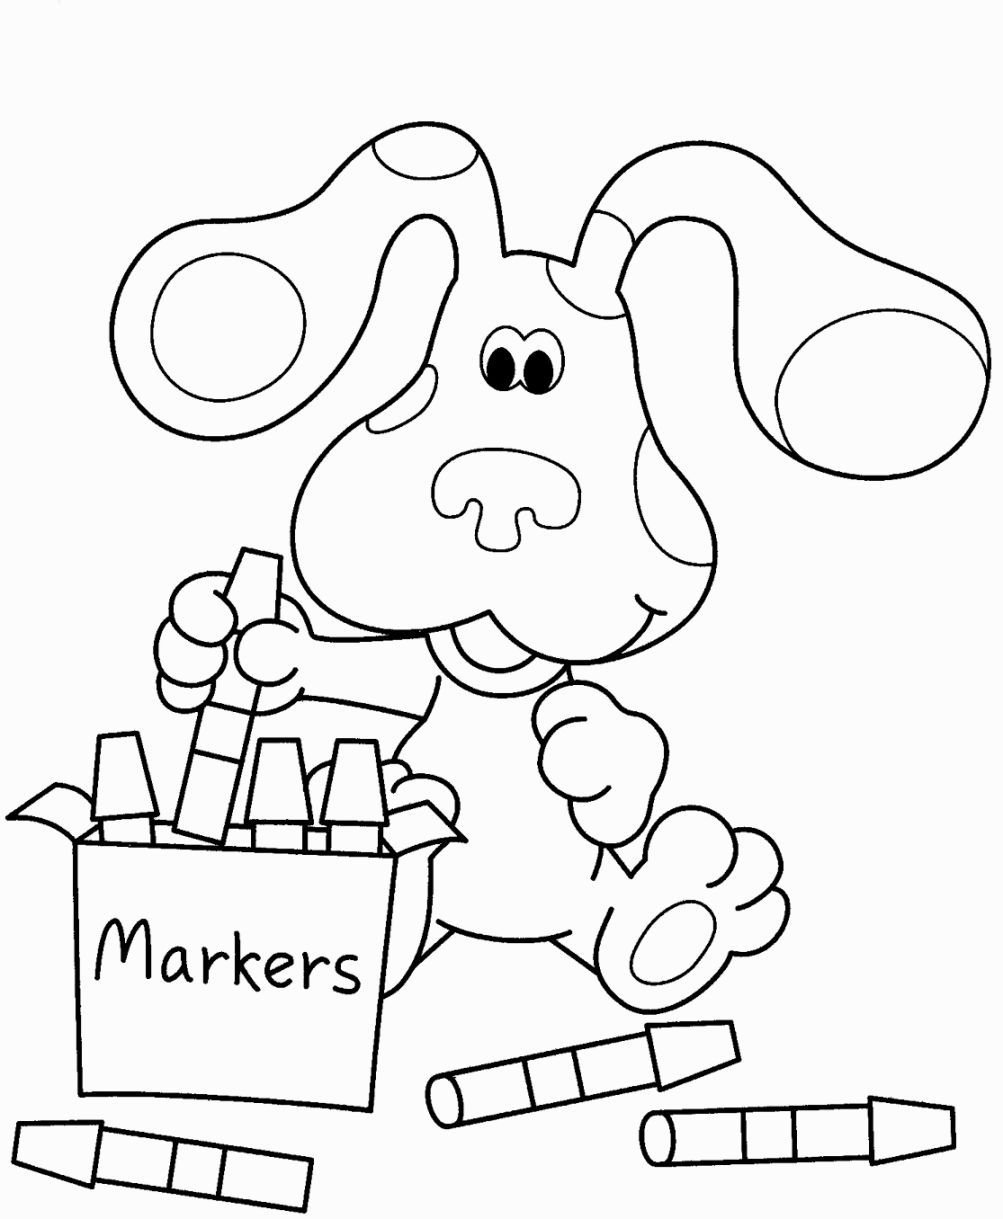 Coloring Pages Nick Jr | Coloring Pages | Pinterest